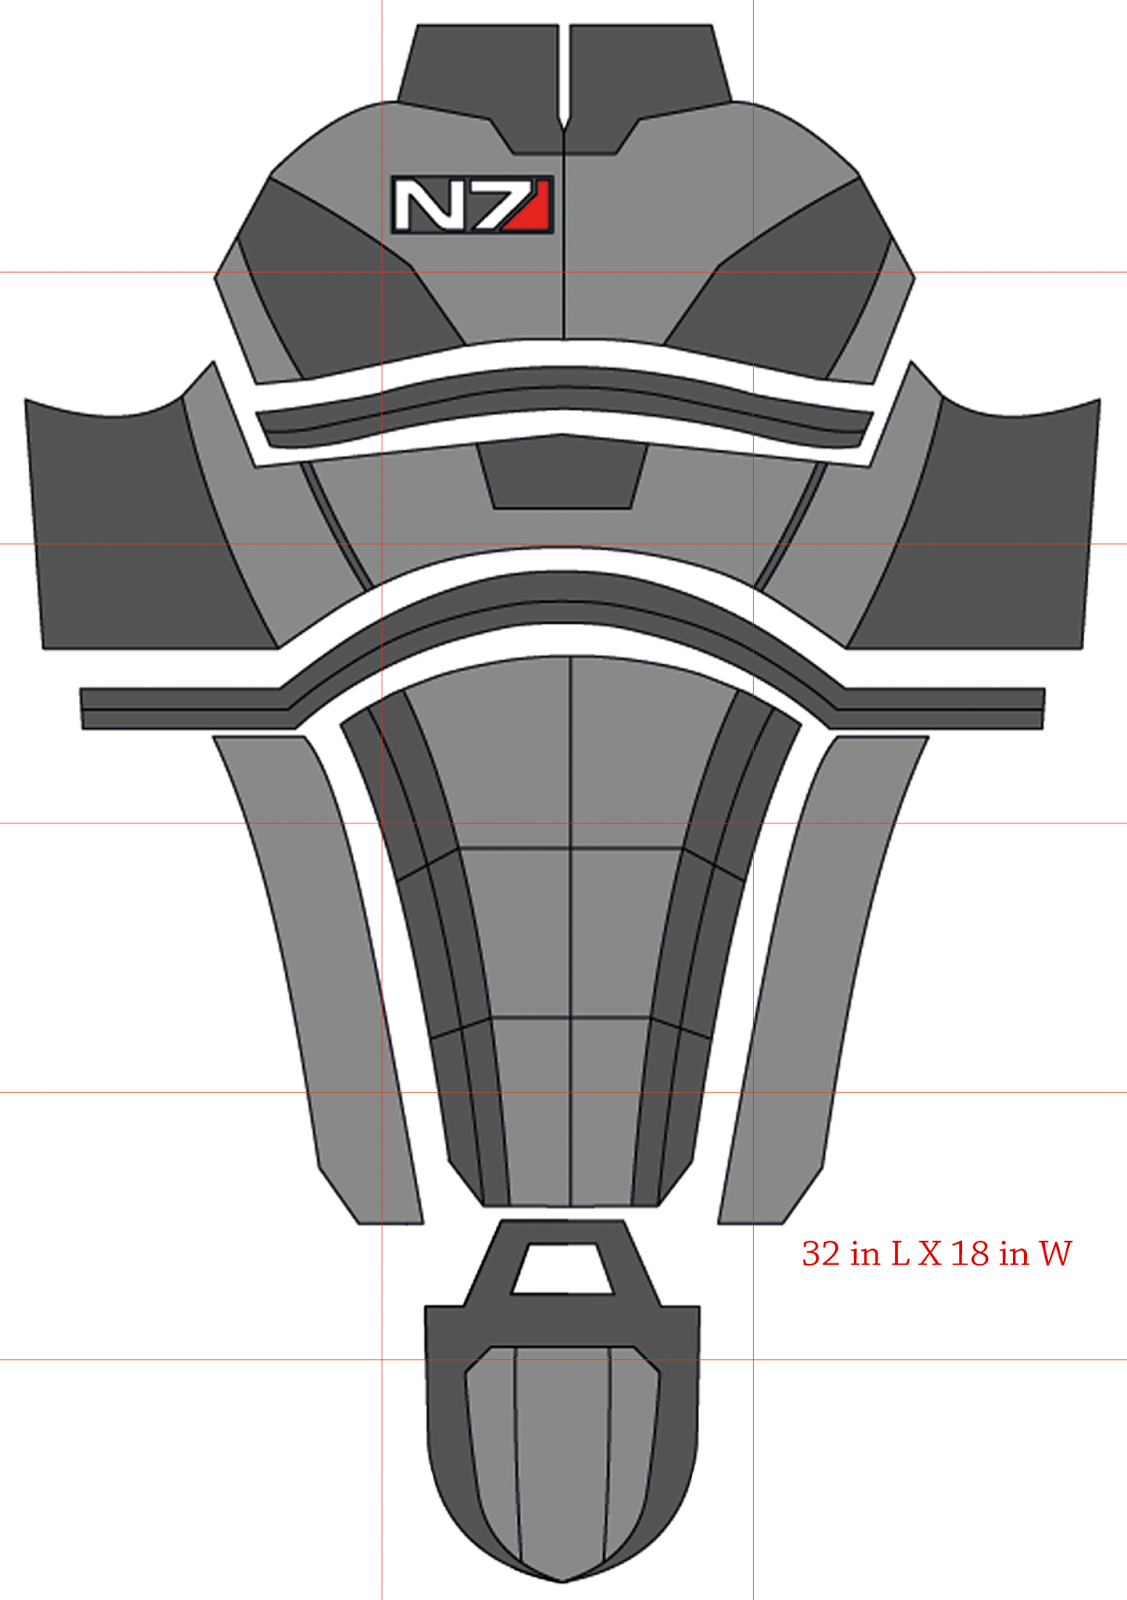 mass effect 3 n7 armor template n7 armor pepakura template related keywords n7 armor